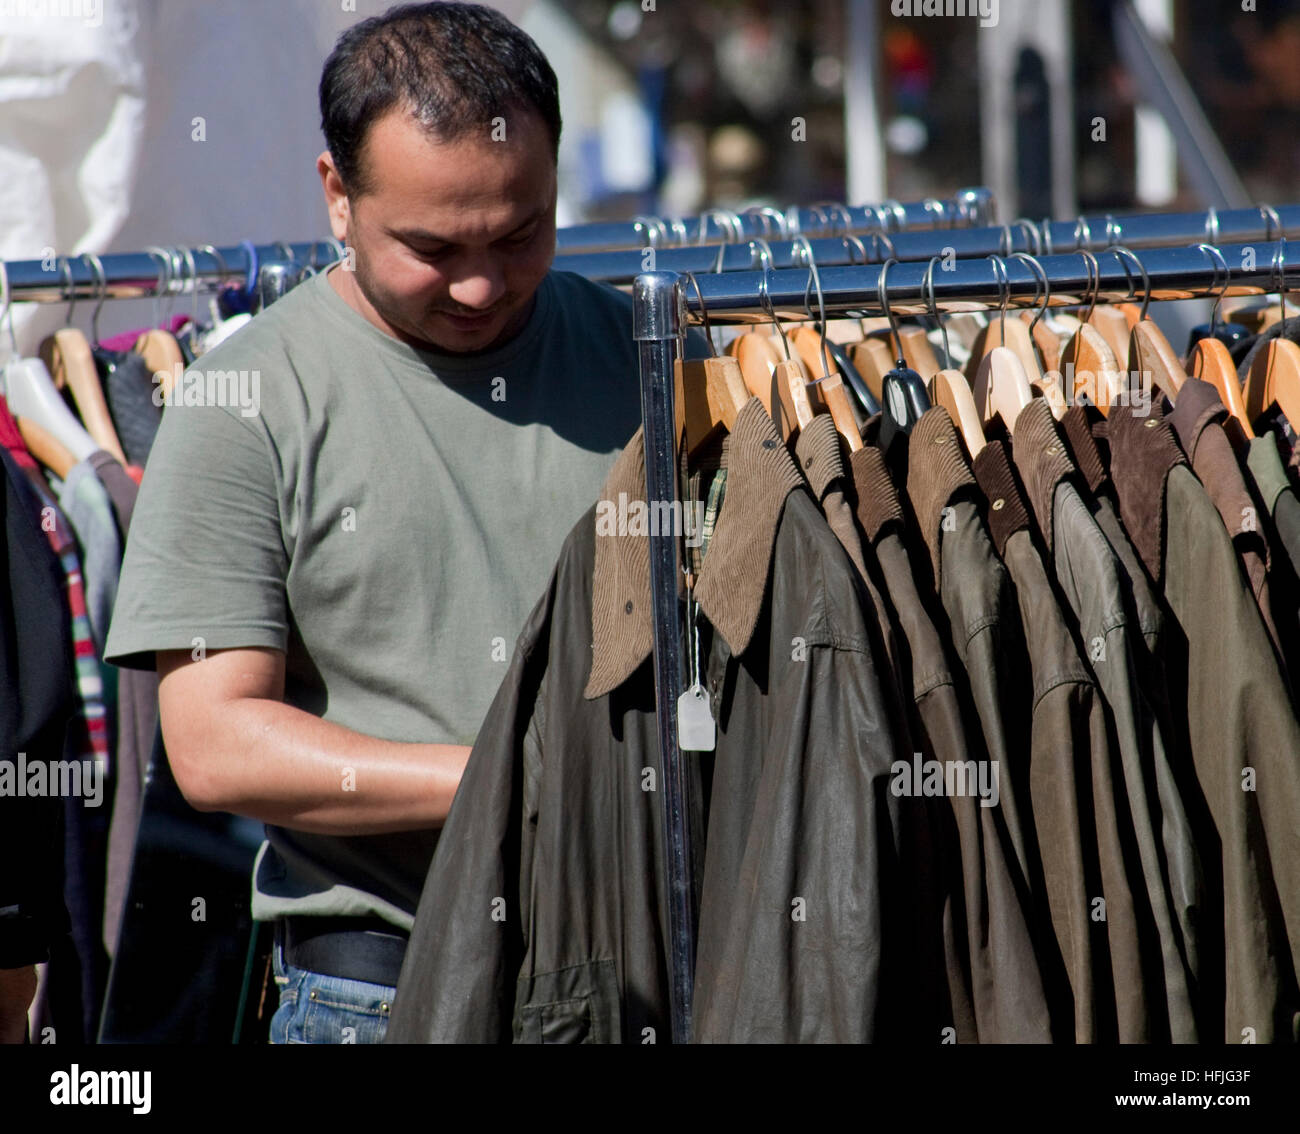 At a street market a man looking a rack of waxed jackets Stock Photo